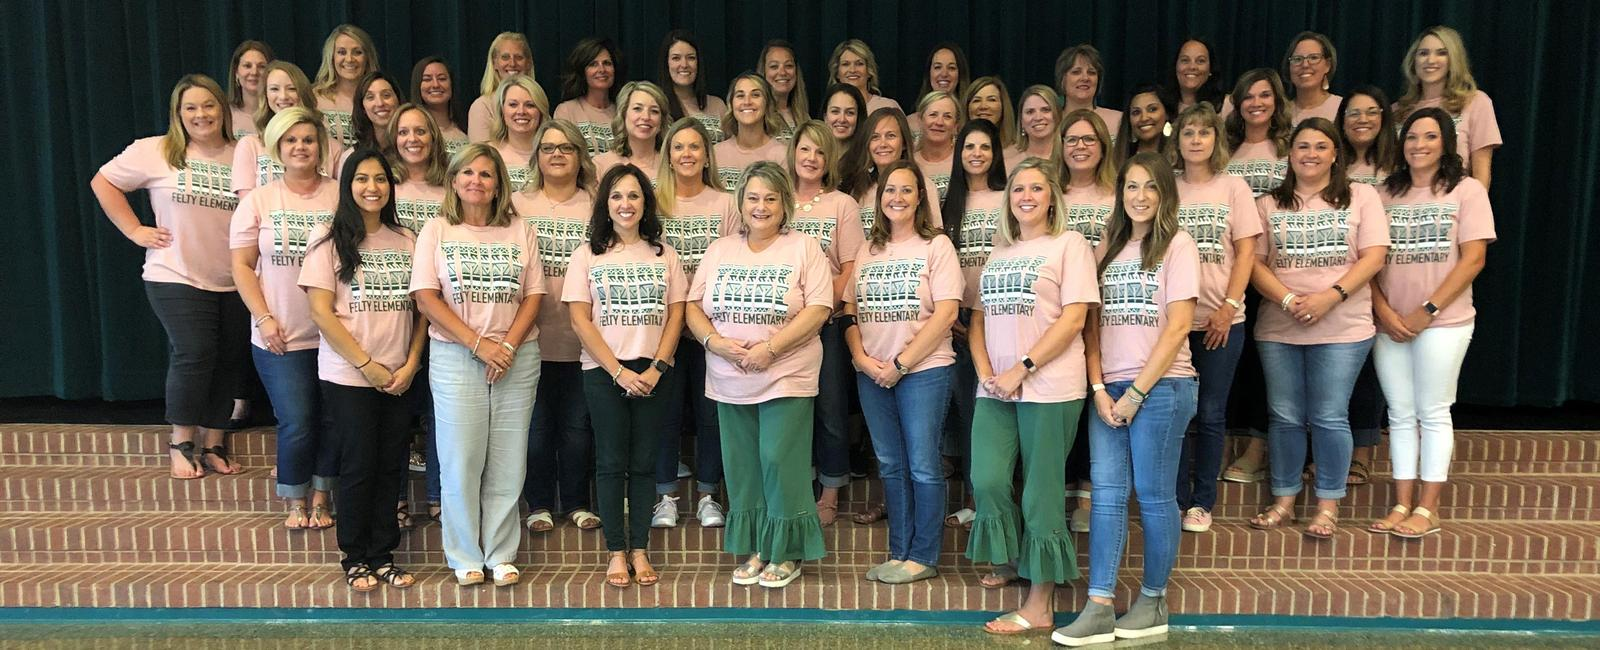 Felty staff 2019-2020